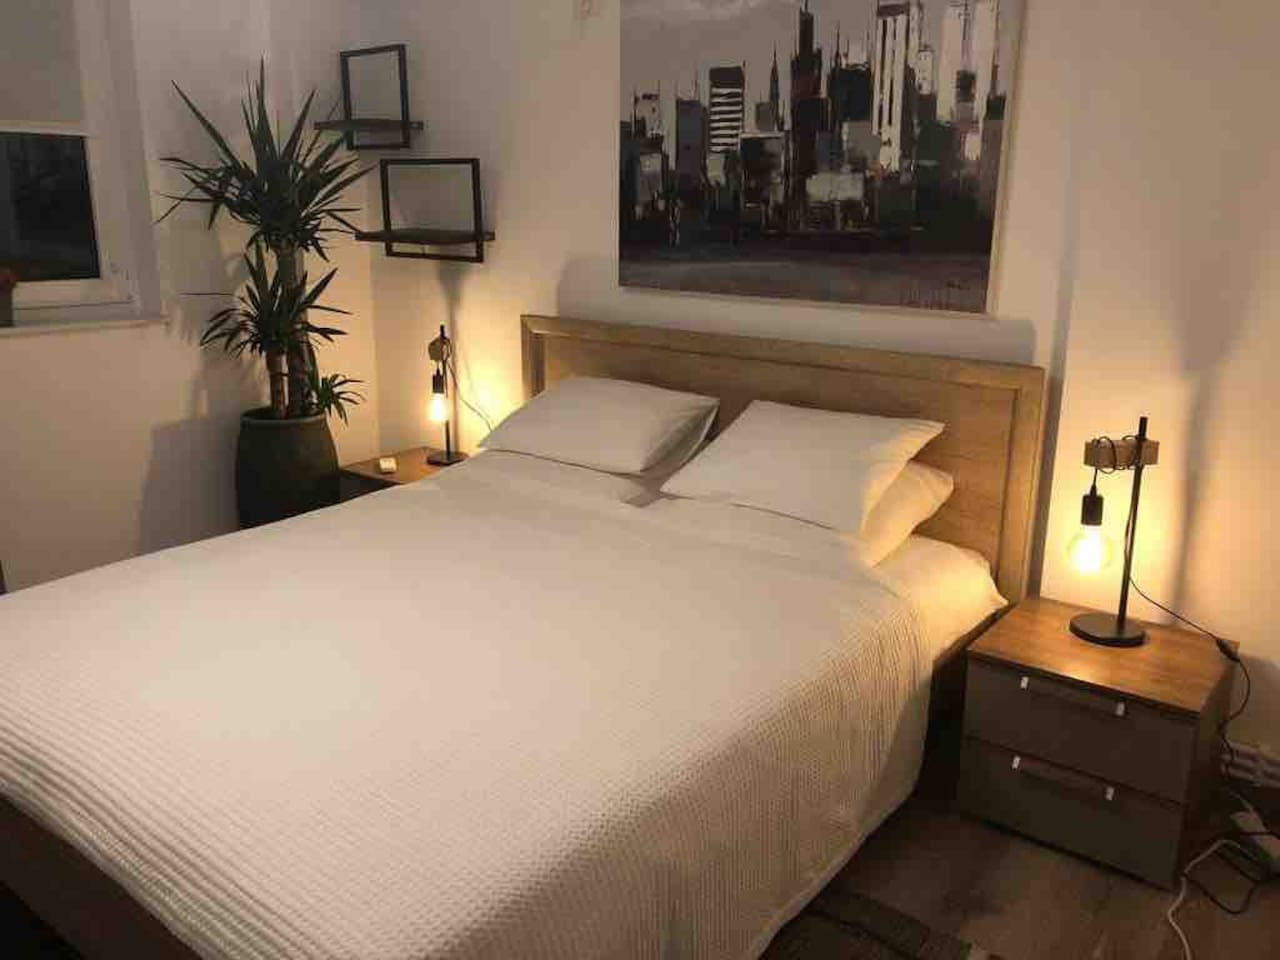 The main bedroom comes with a 160 cm x 200 cm queen bed and air conditioning.